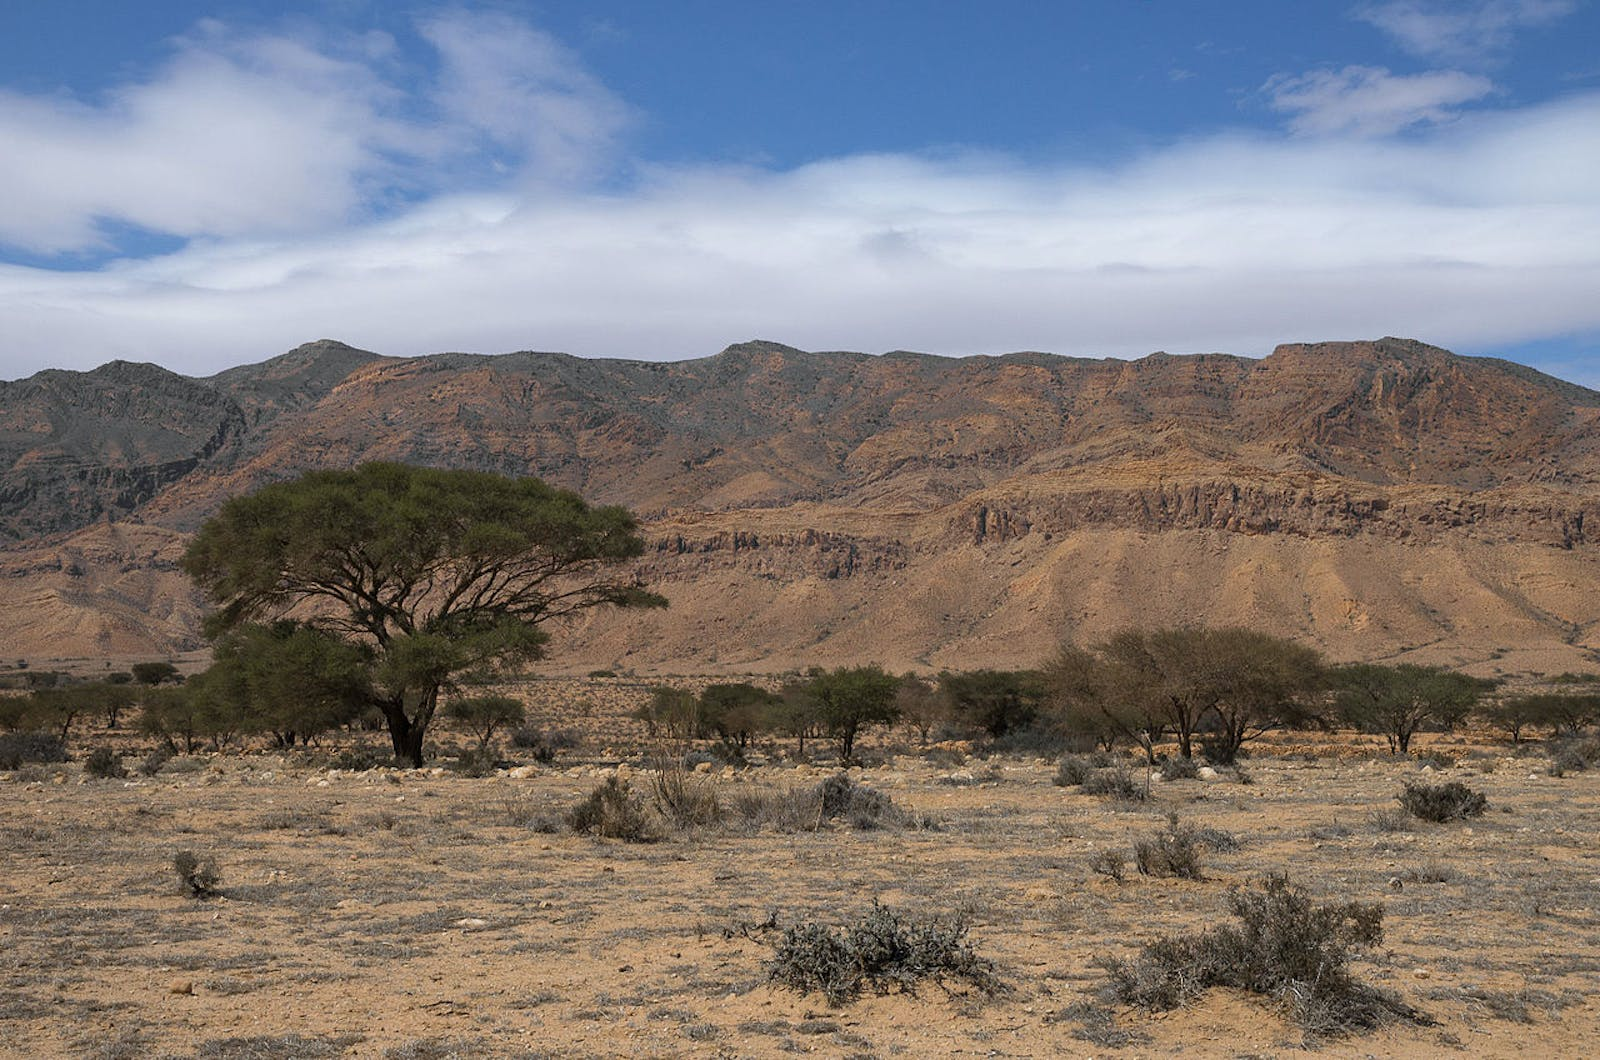 Mediterranean Dry Woodlands and Steppe